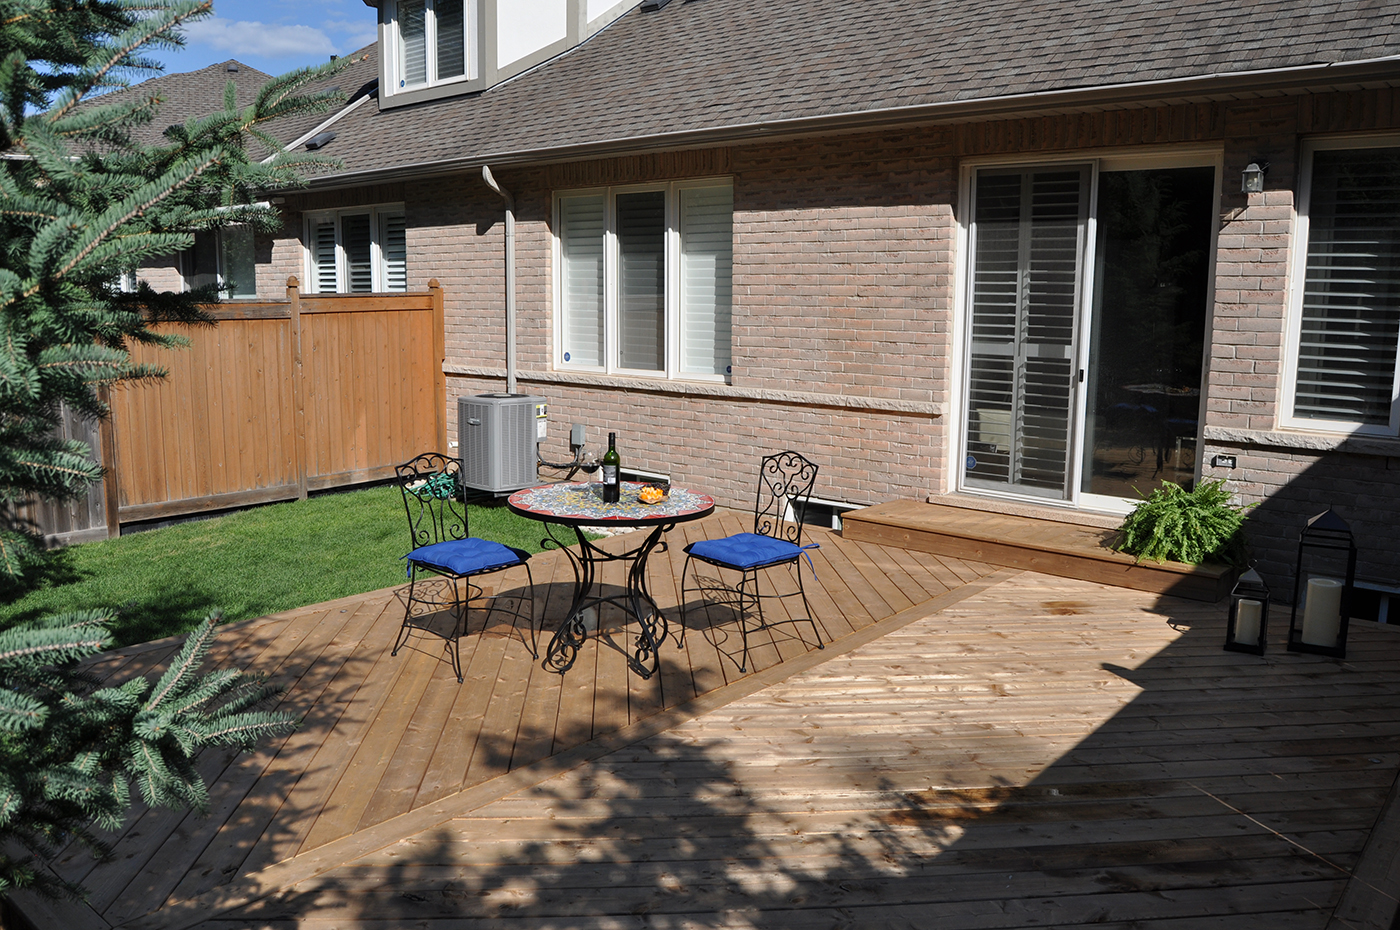 Wood deck in the backyard.